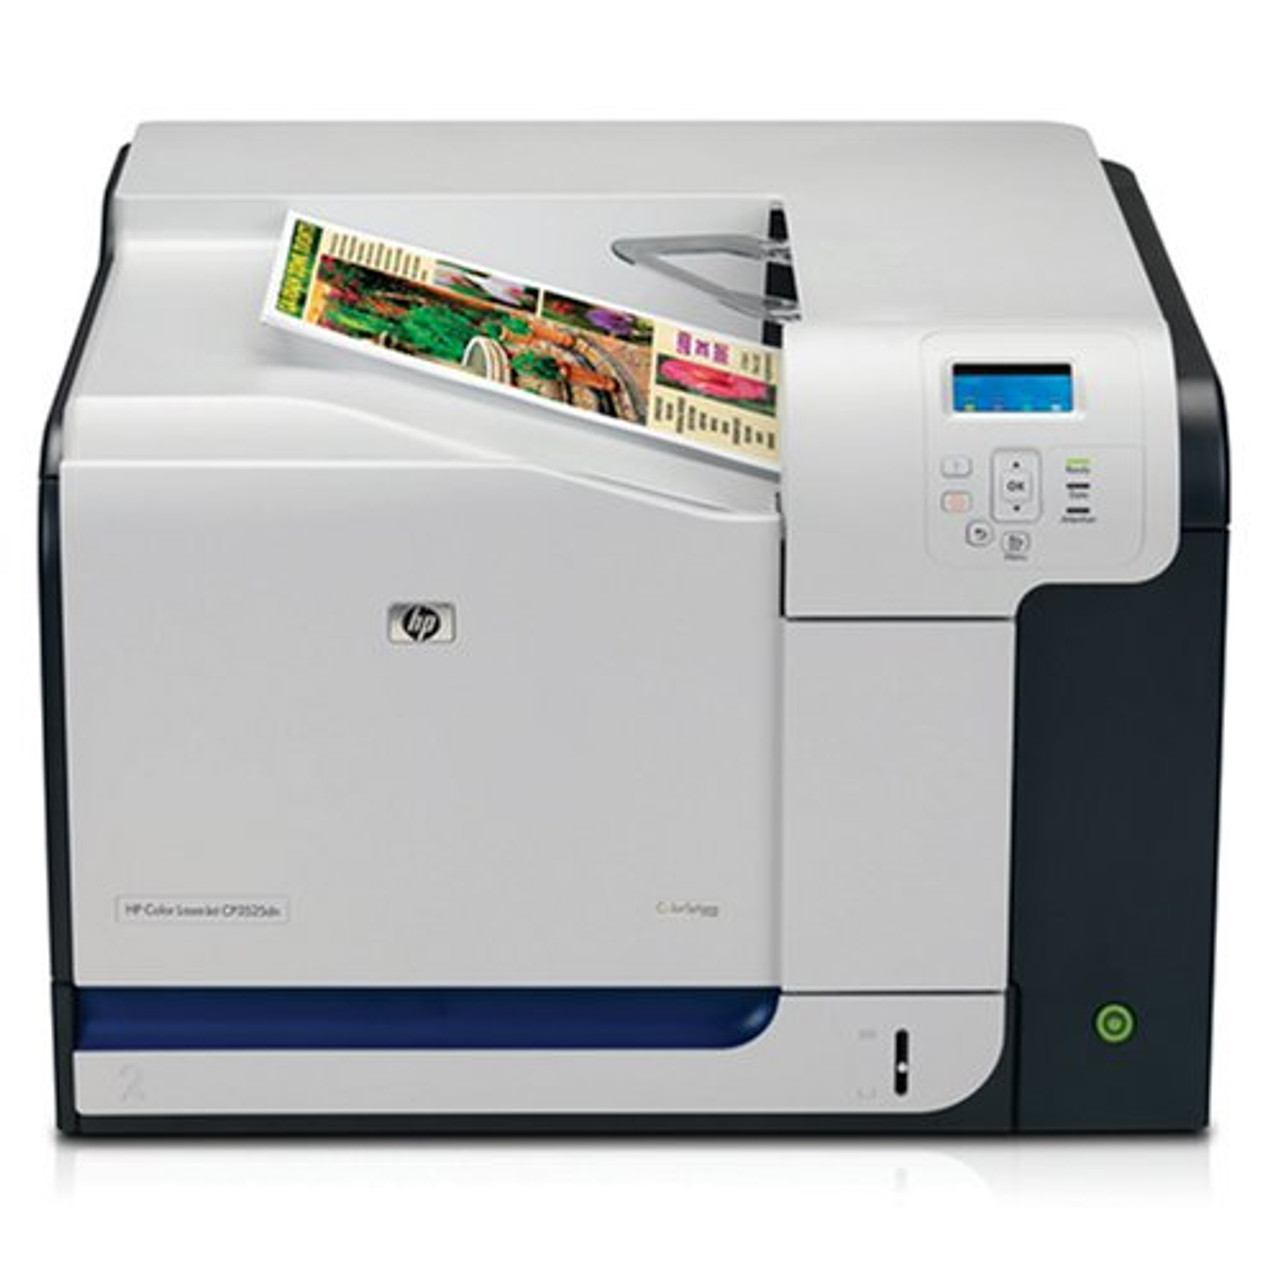 HP Color LaserJet CP3525dn - CC470A - HP Laser Printer for sale